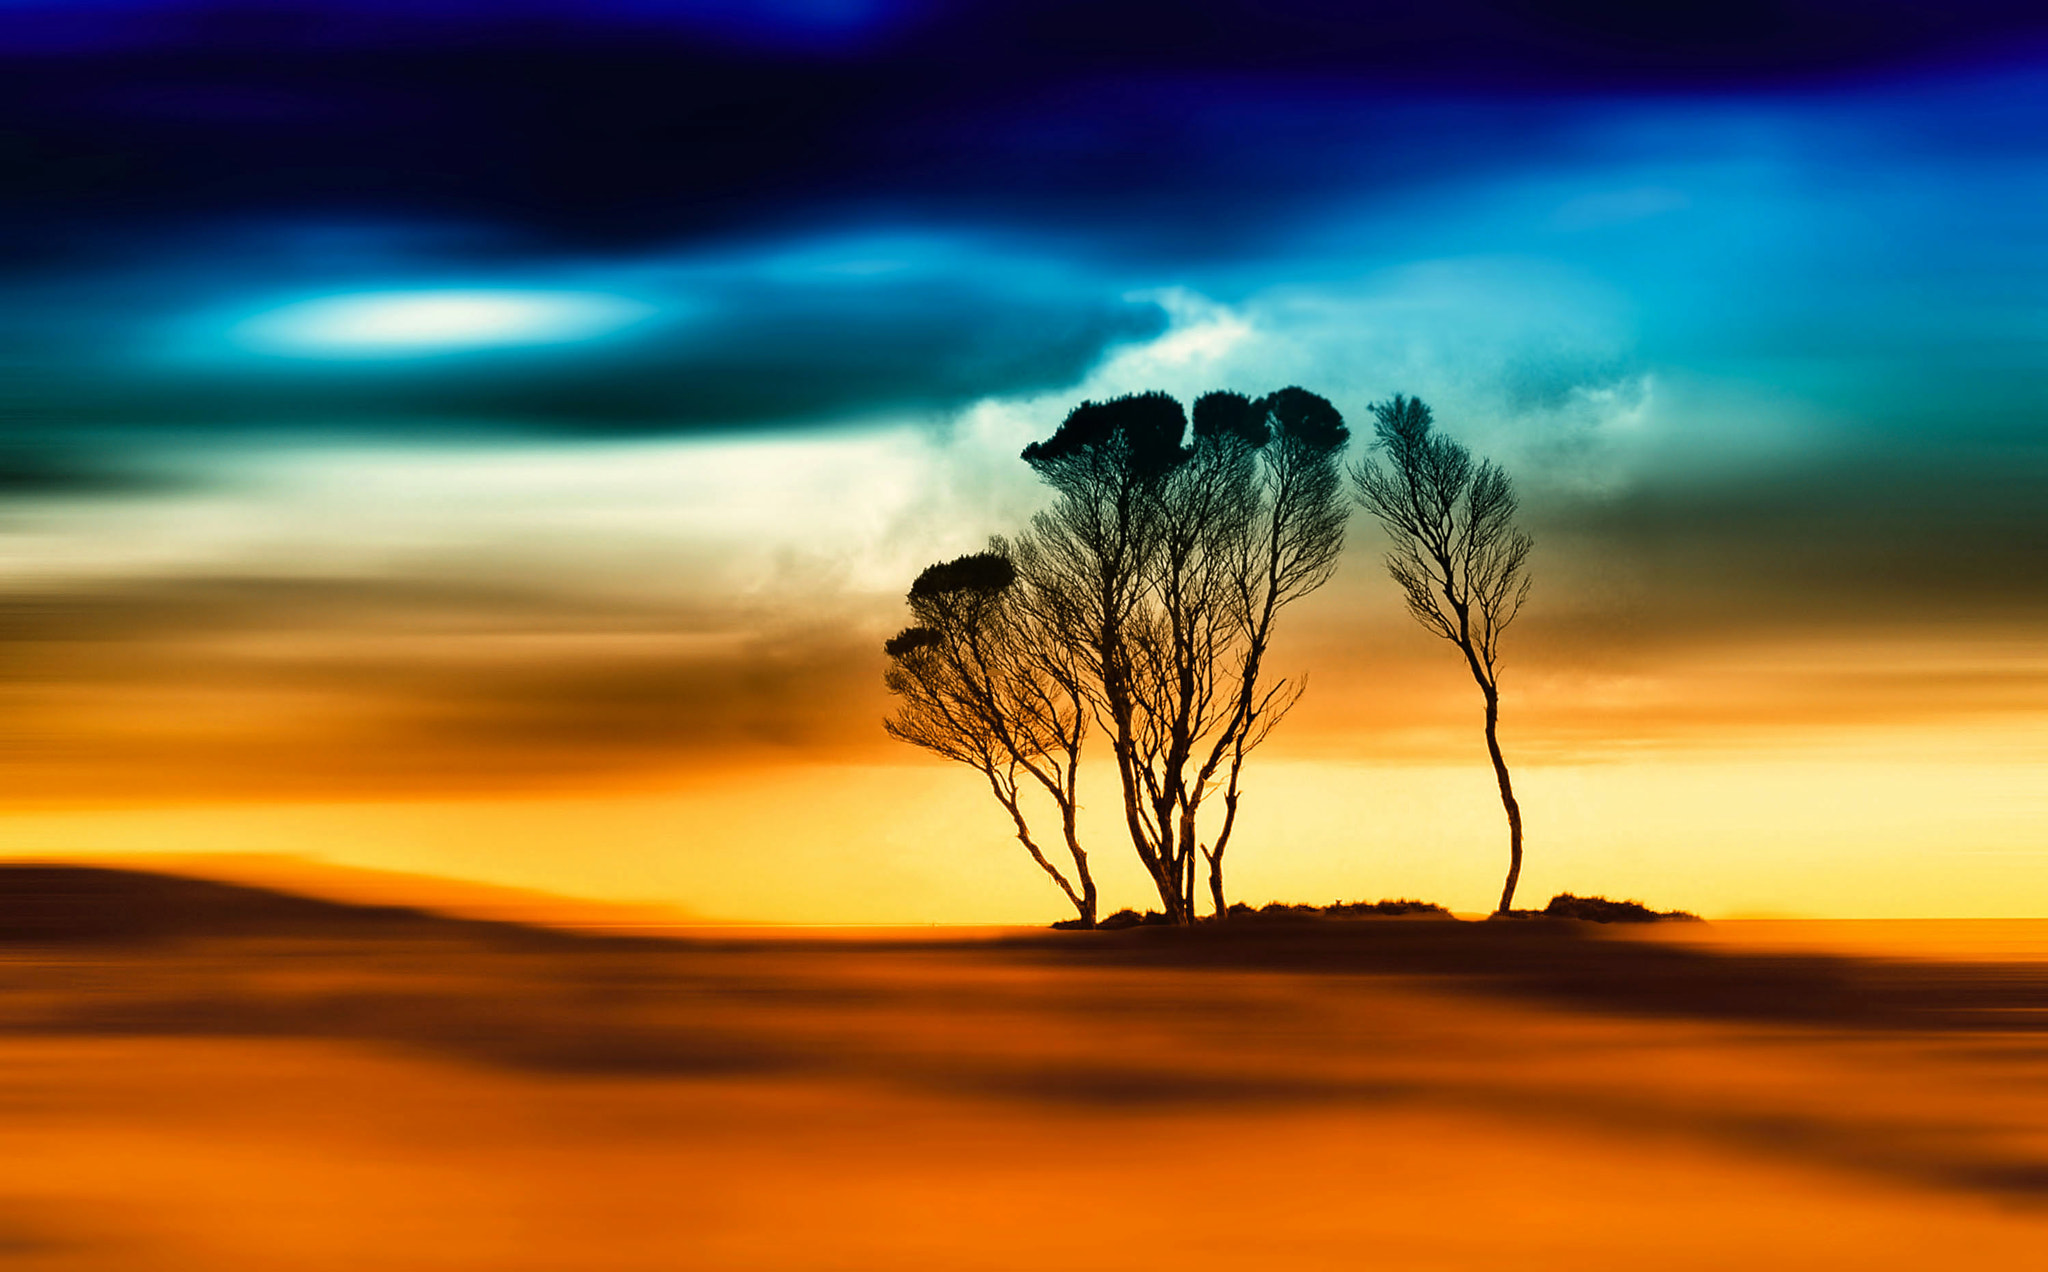 Photograph The Gardens Dream by Margaret Morgan on 500px